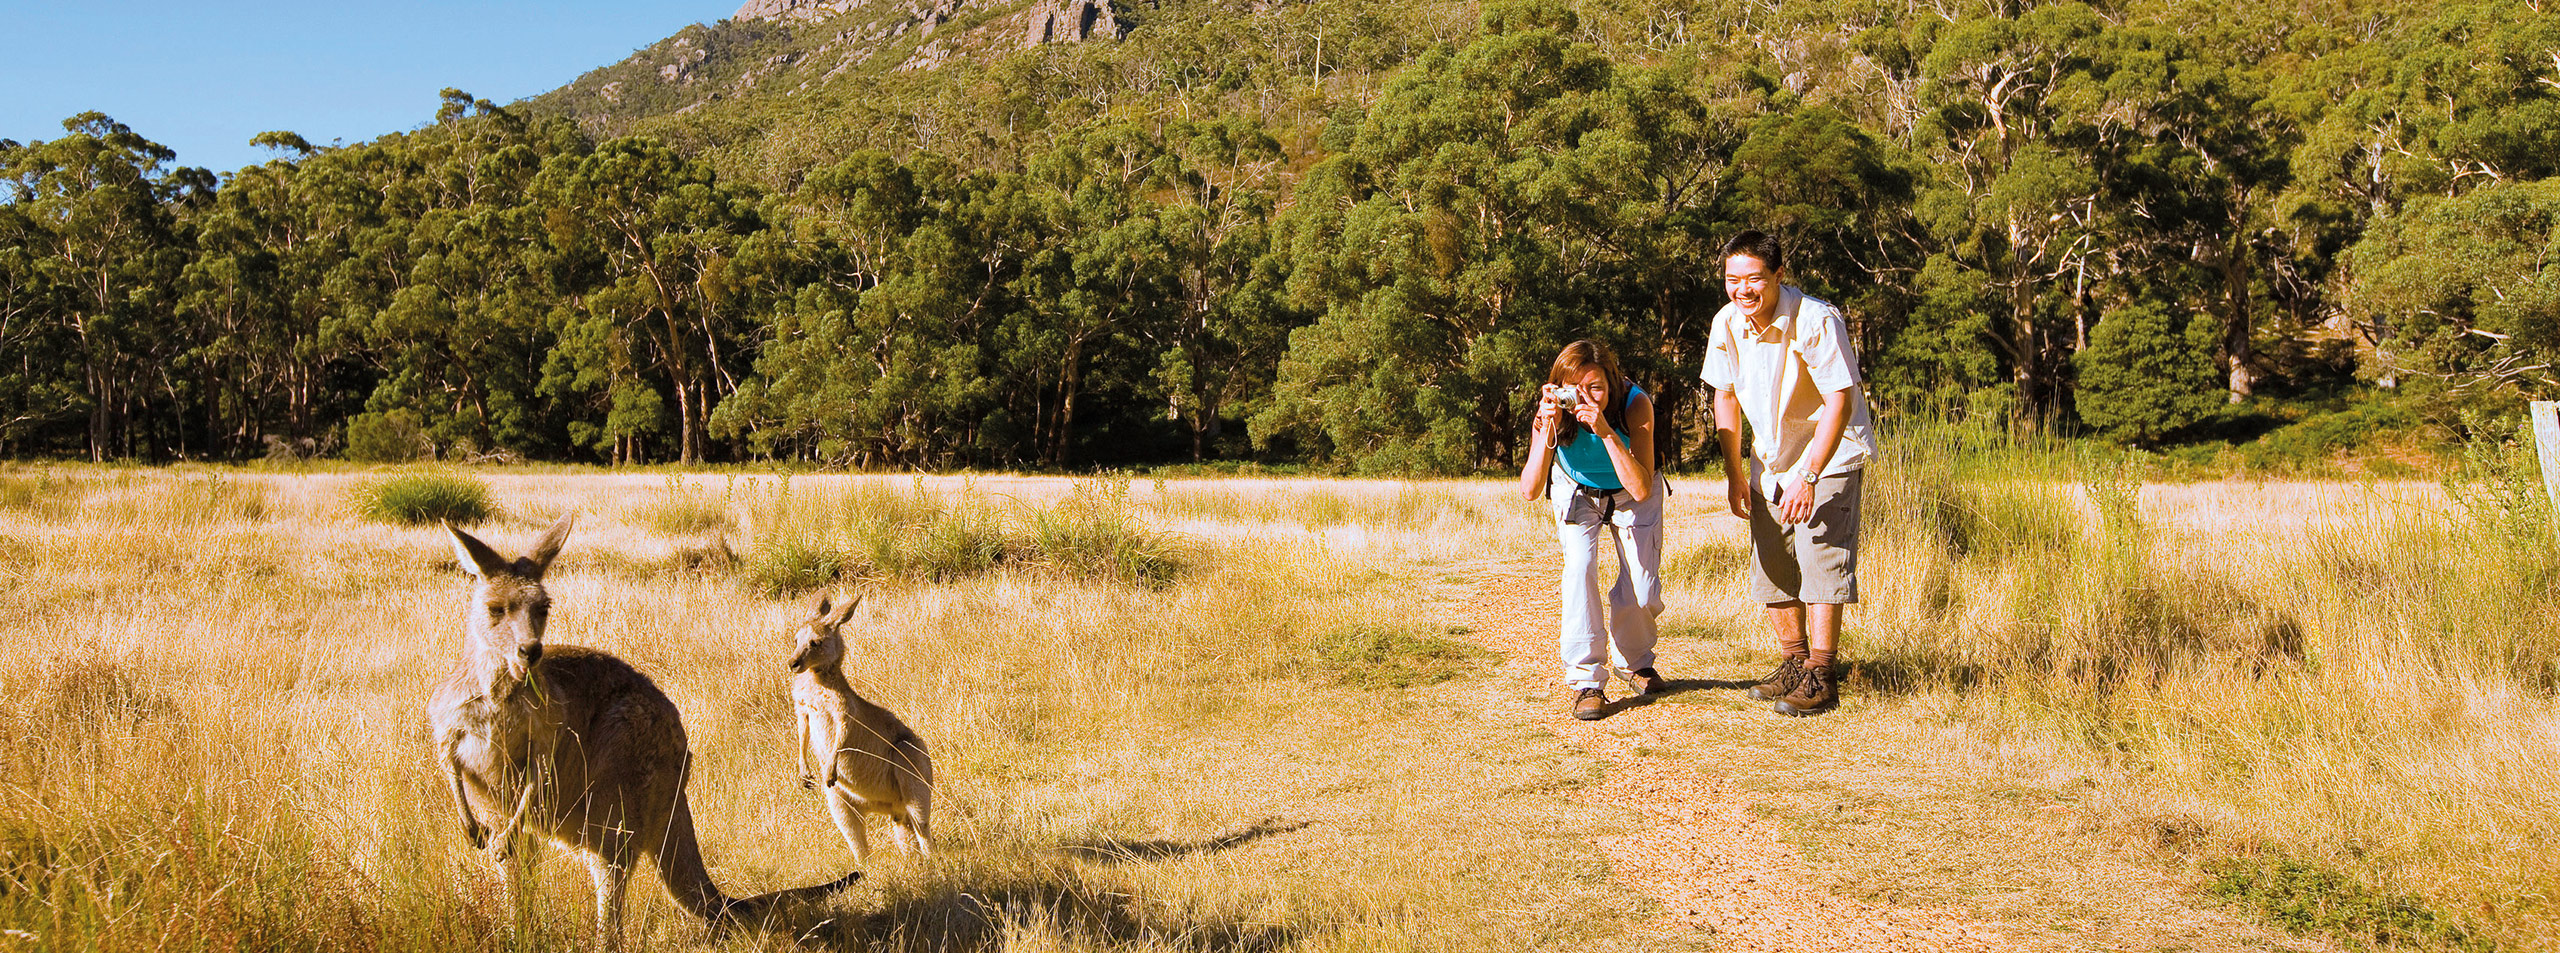 Kangaroos at Halls Gap